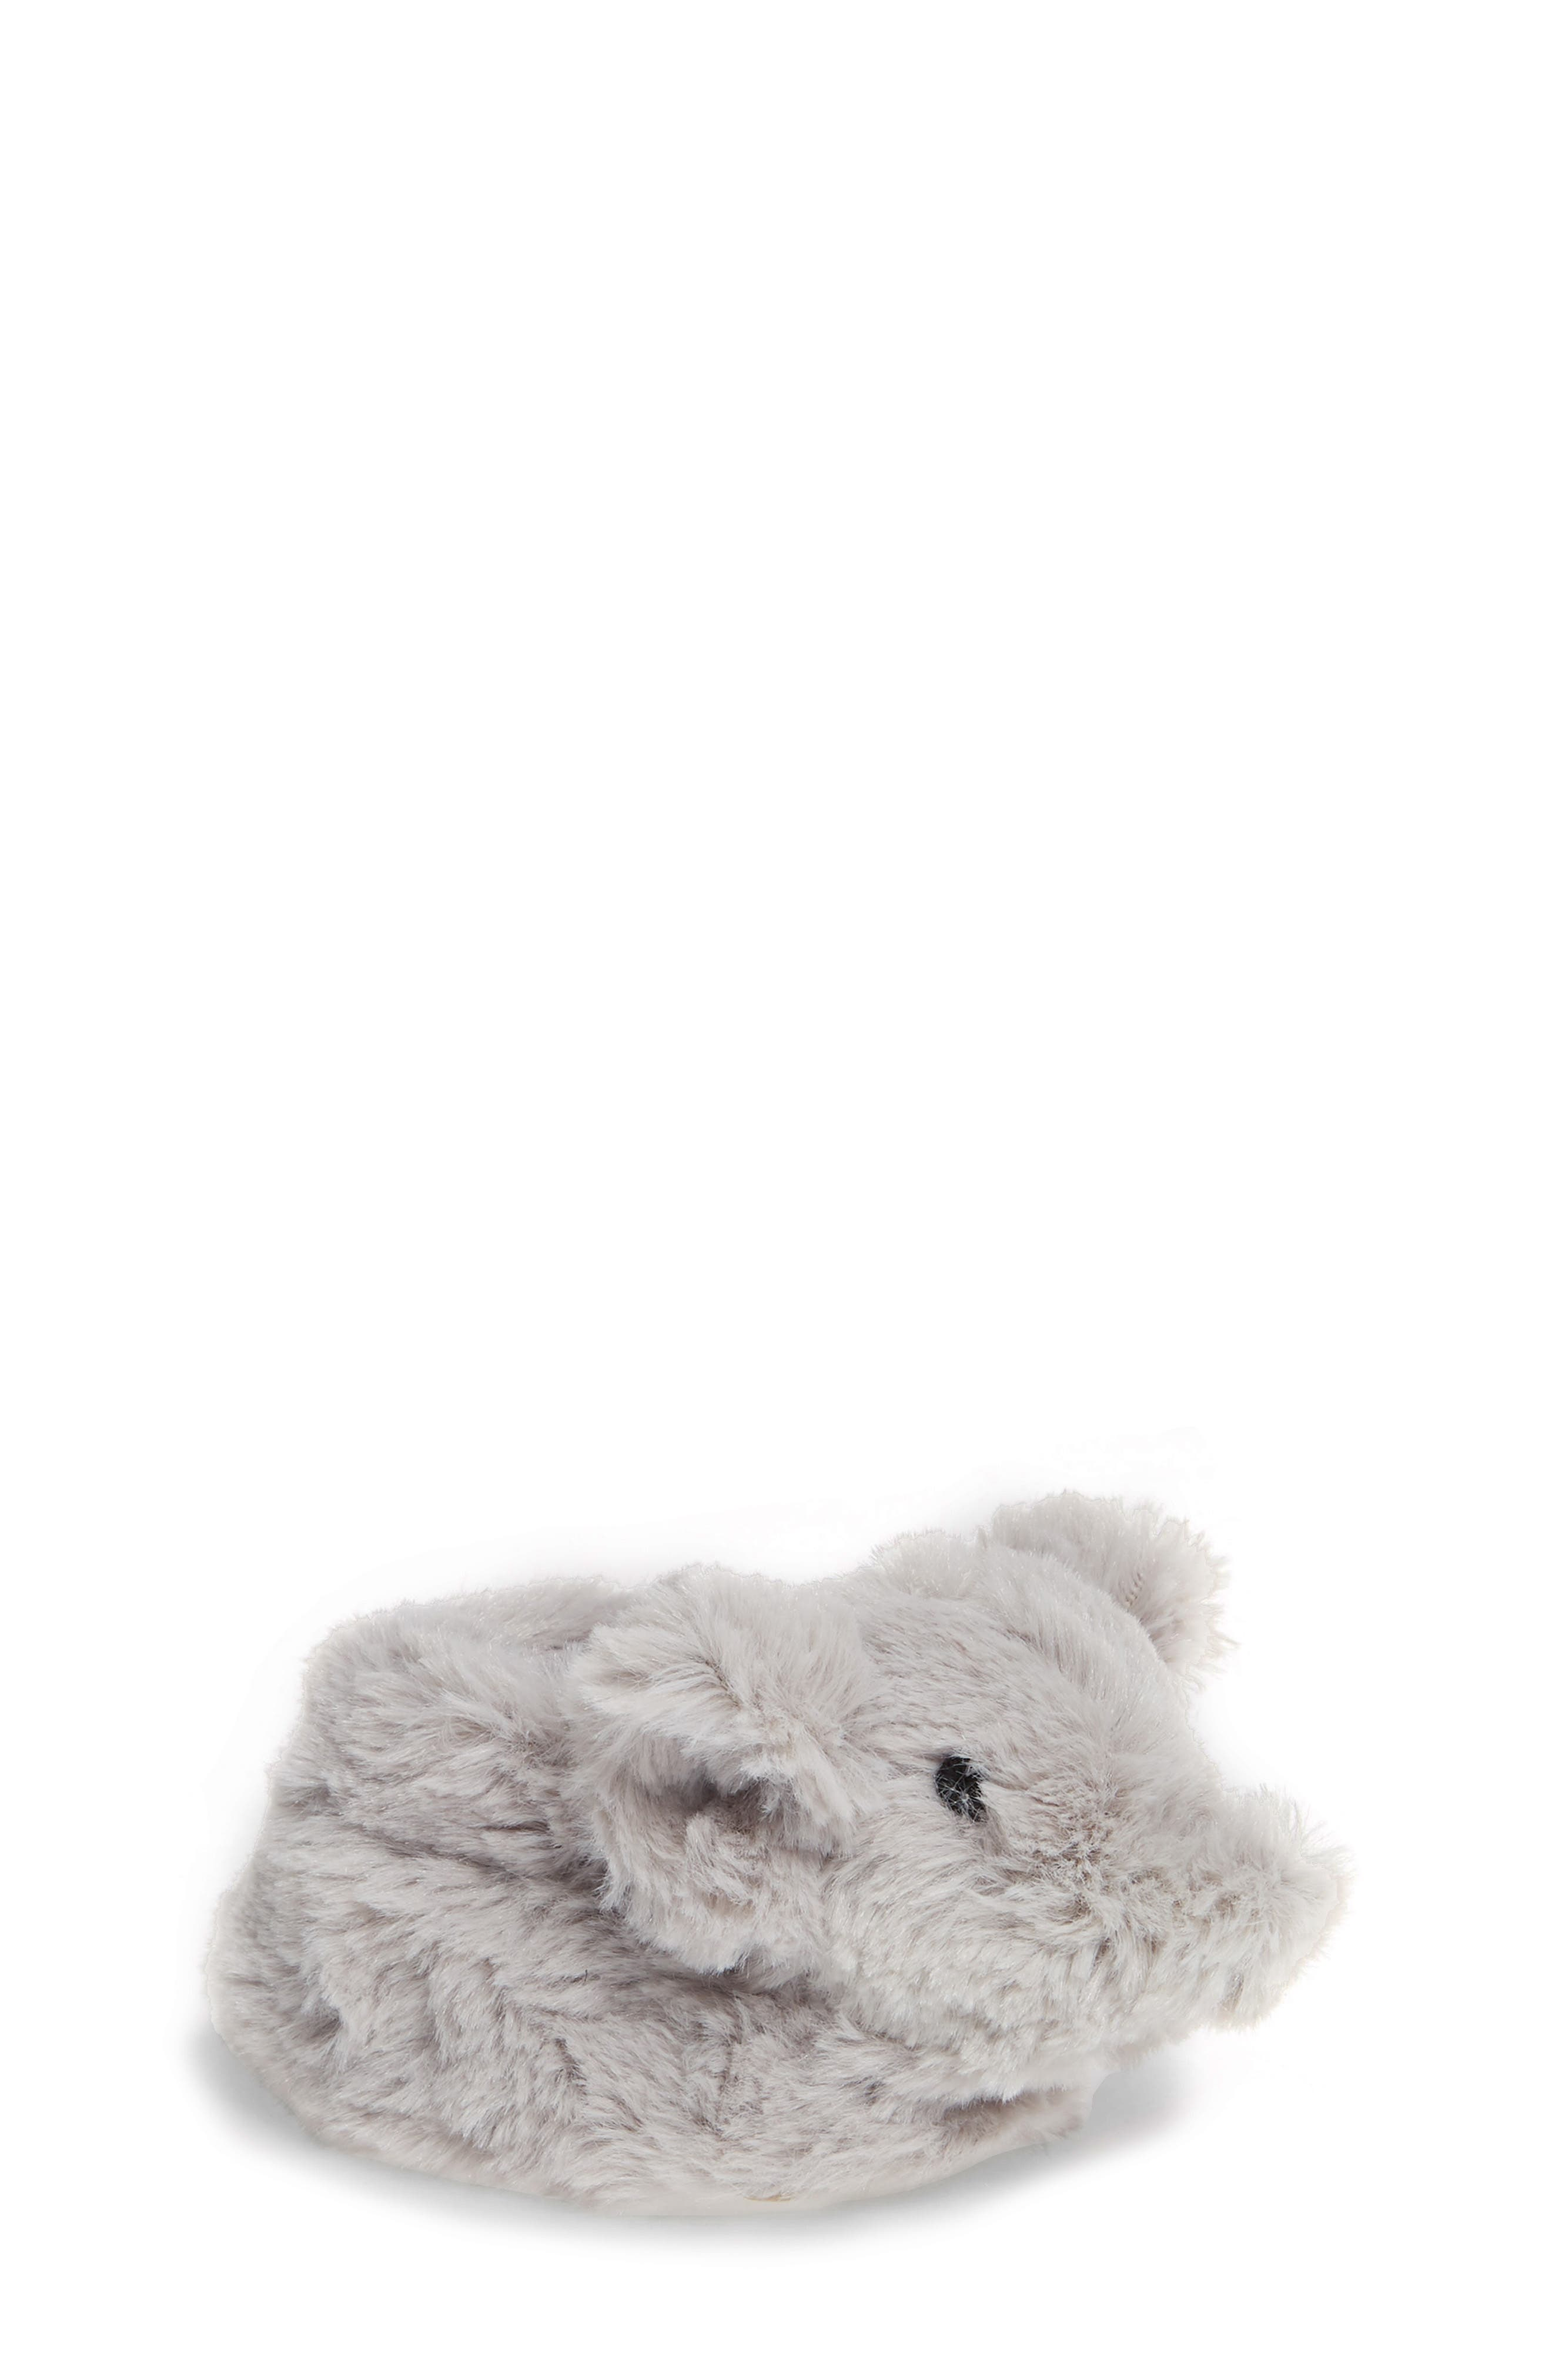 Faux Fur Animal Slipper,                             Main thumbnail 1, color,                             GREY ELEPHANT